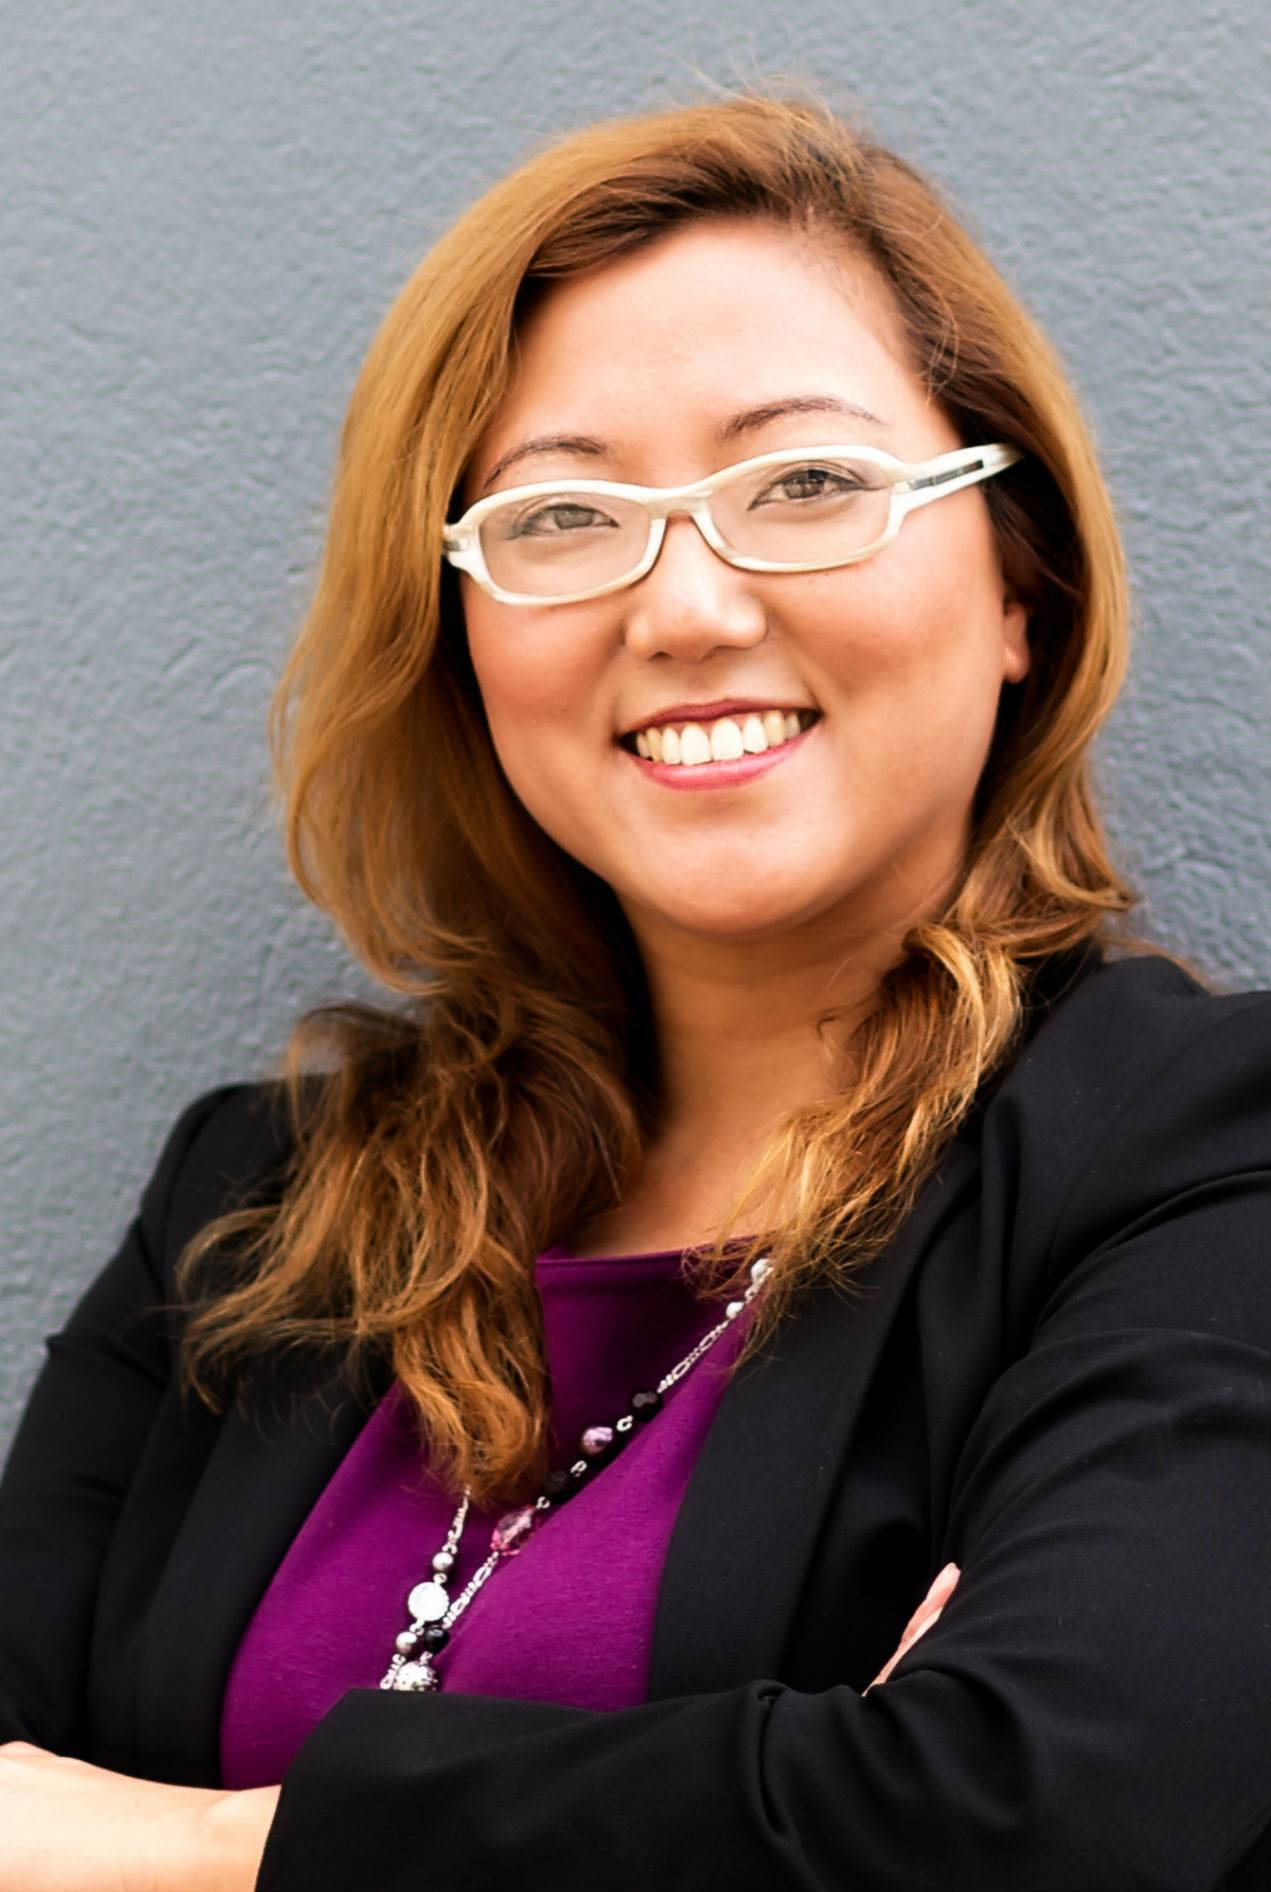 Former mayoral candidate Holly Kim of Mundelein has landed a job with Vernon Township.